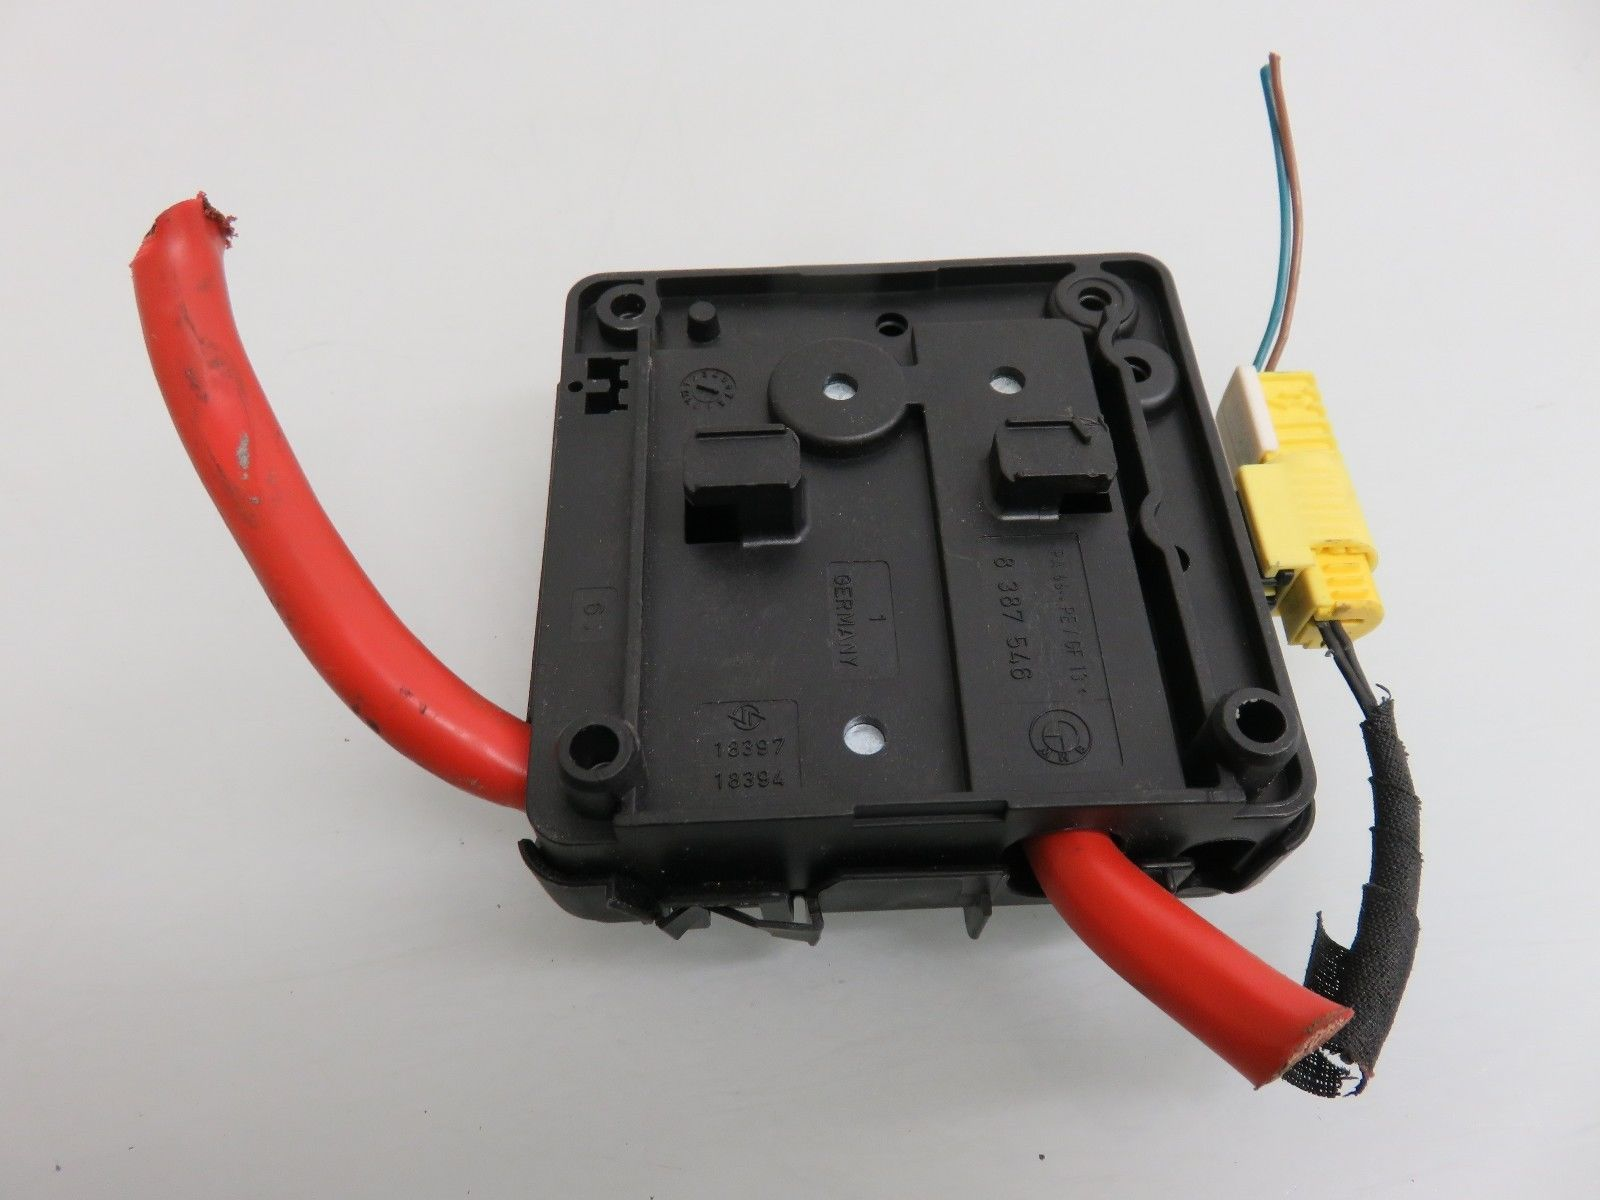 hight resolution of bmw e46 trunk fuse box wiring diagrams 330i fuse box location 99 05 bmw e46 320i